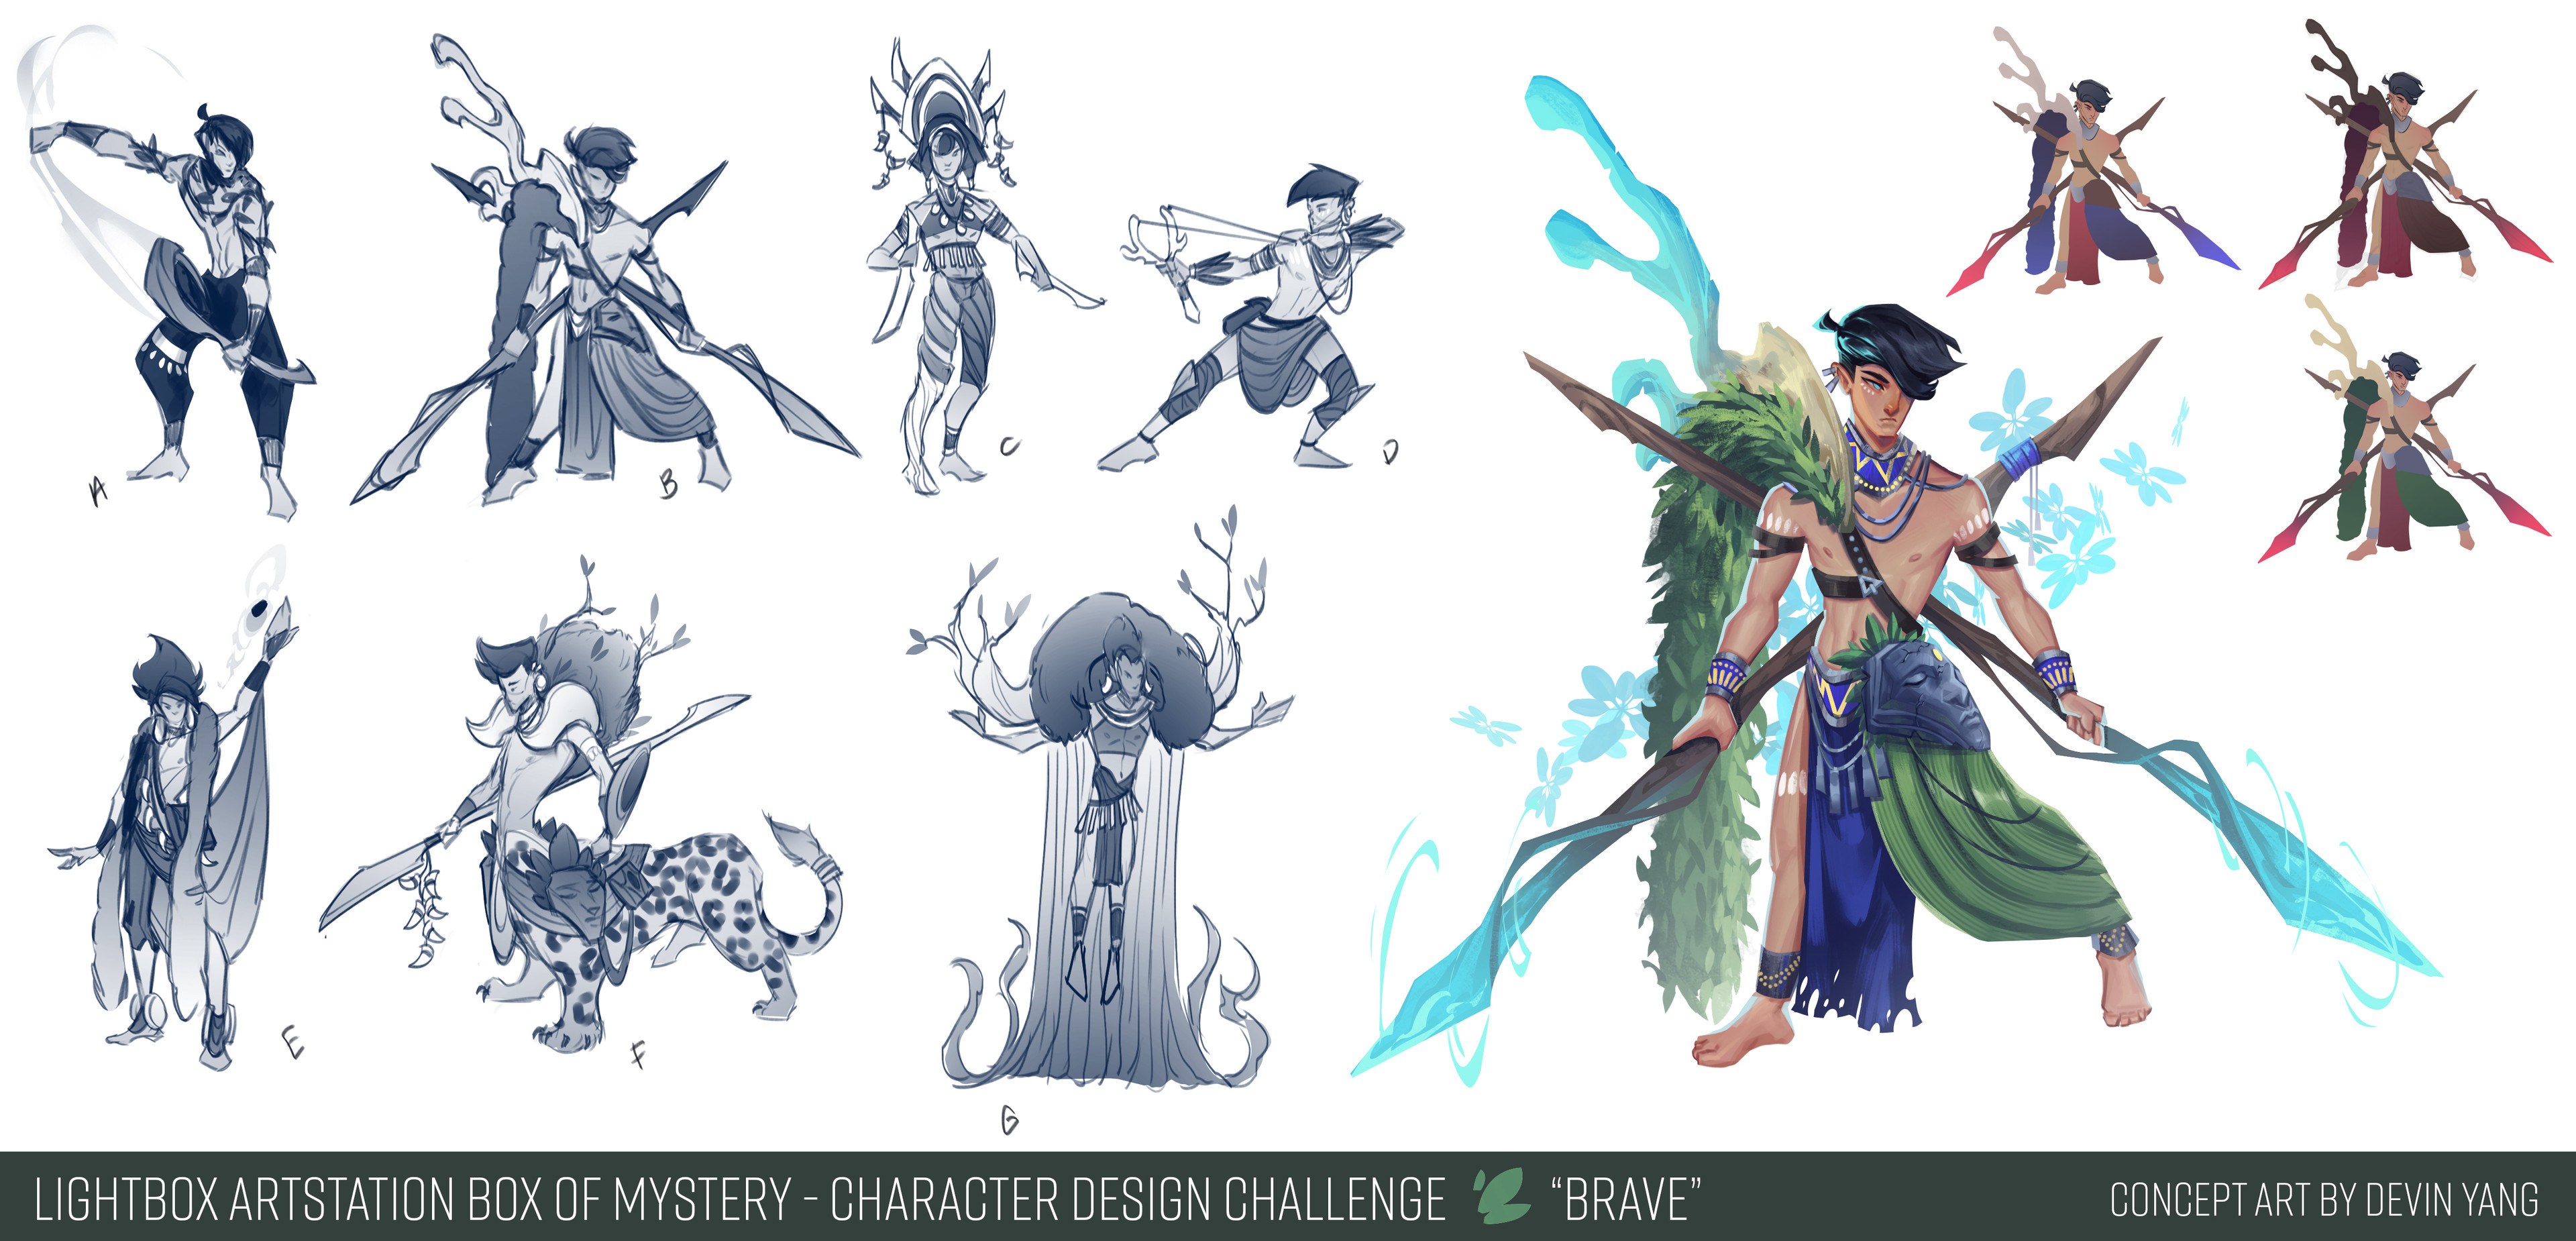 Sketches/exploration + callouts for Brave character